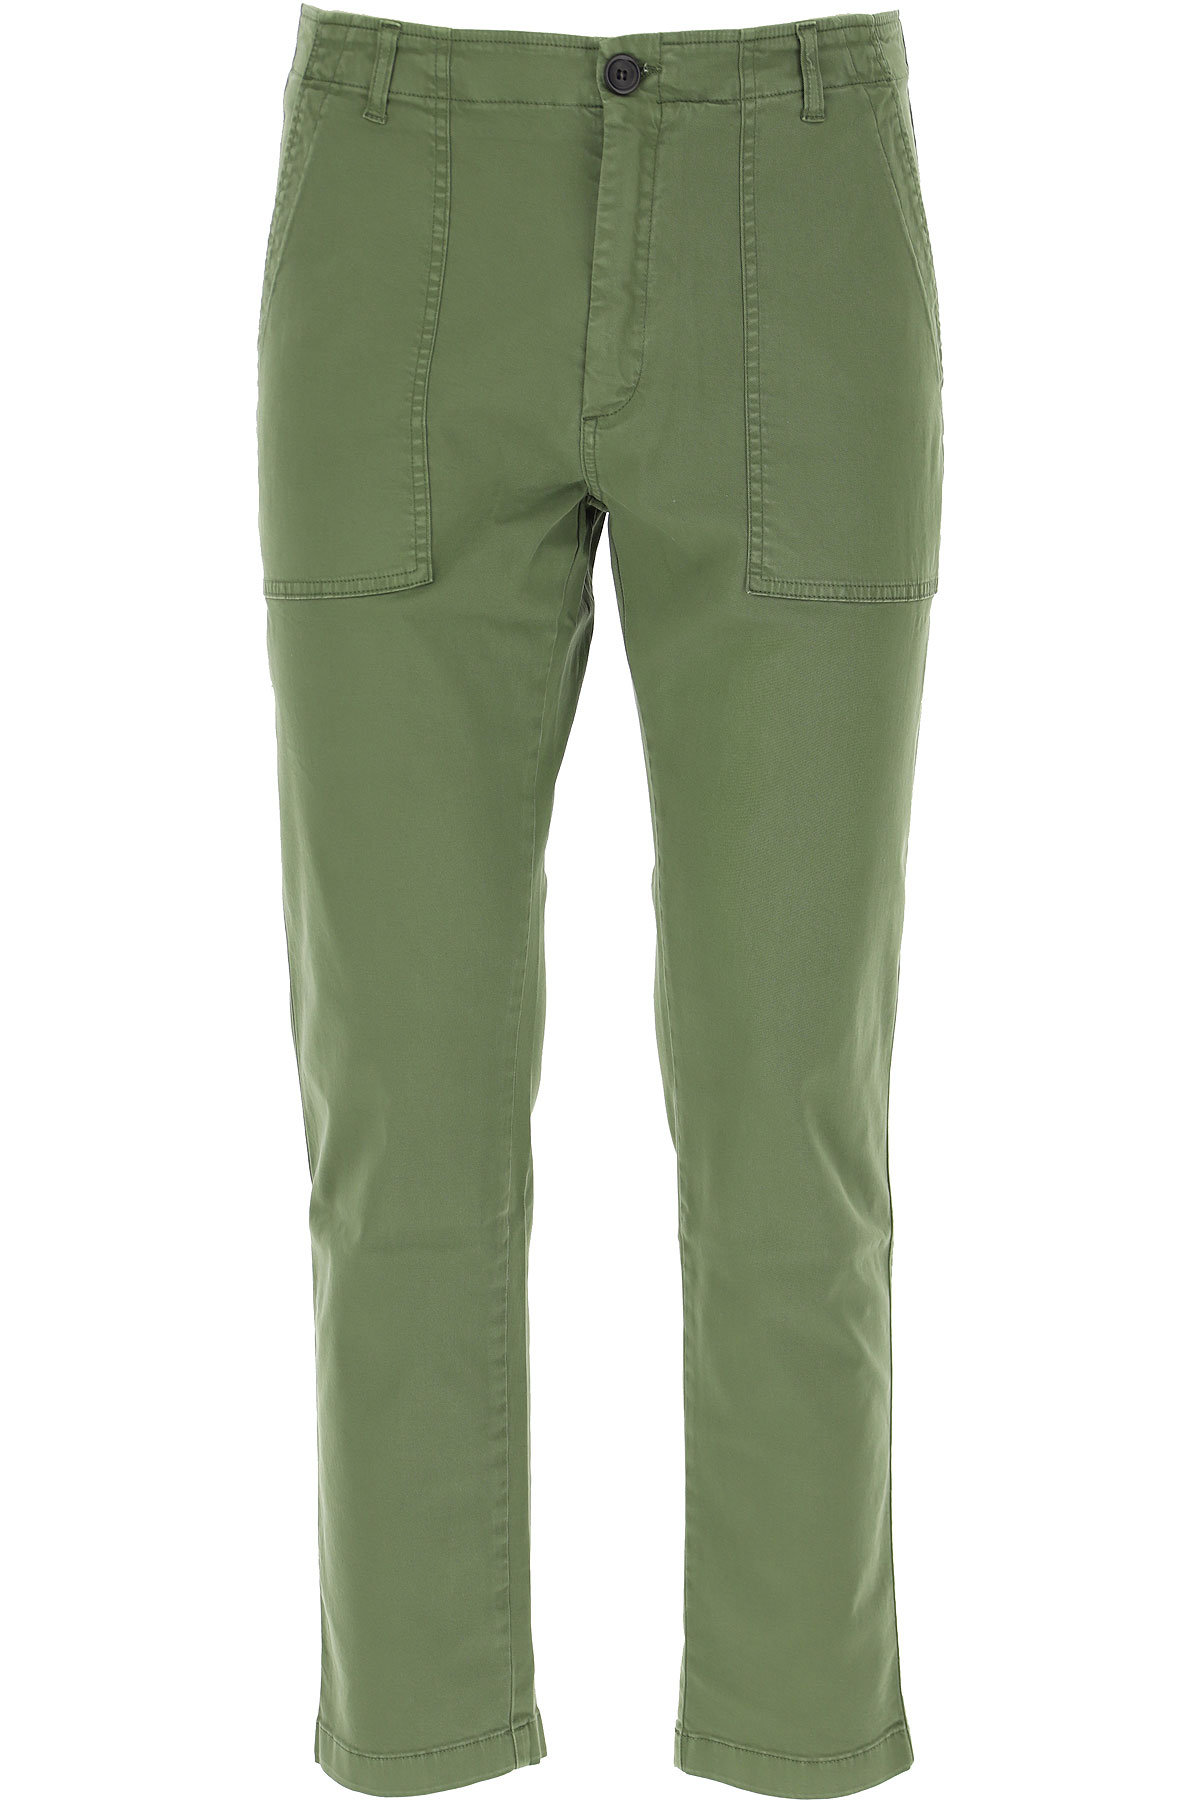 Department Five Pants for Men On Sale, Military Green, Cotton, 2019, 30 33